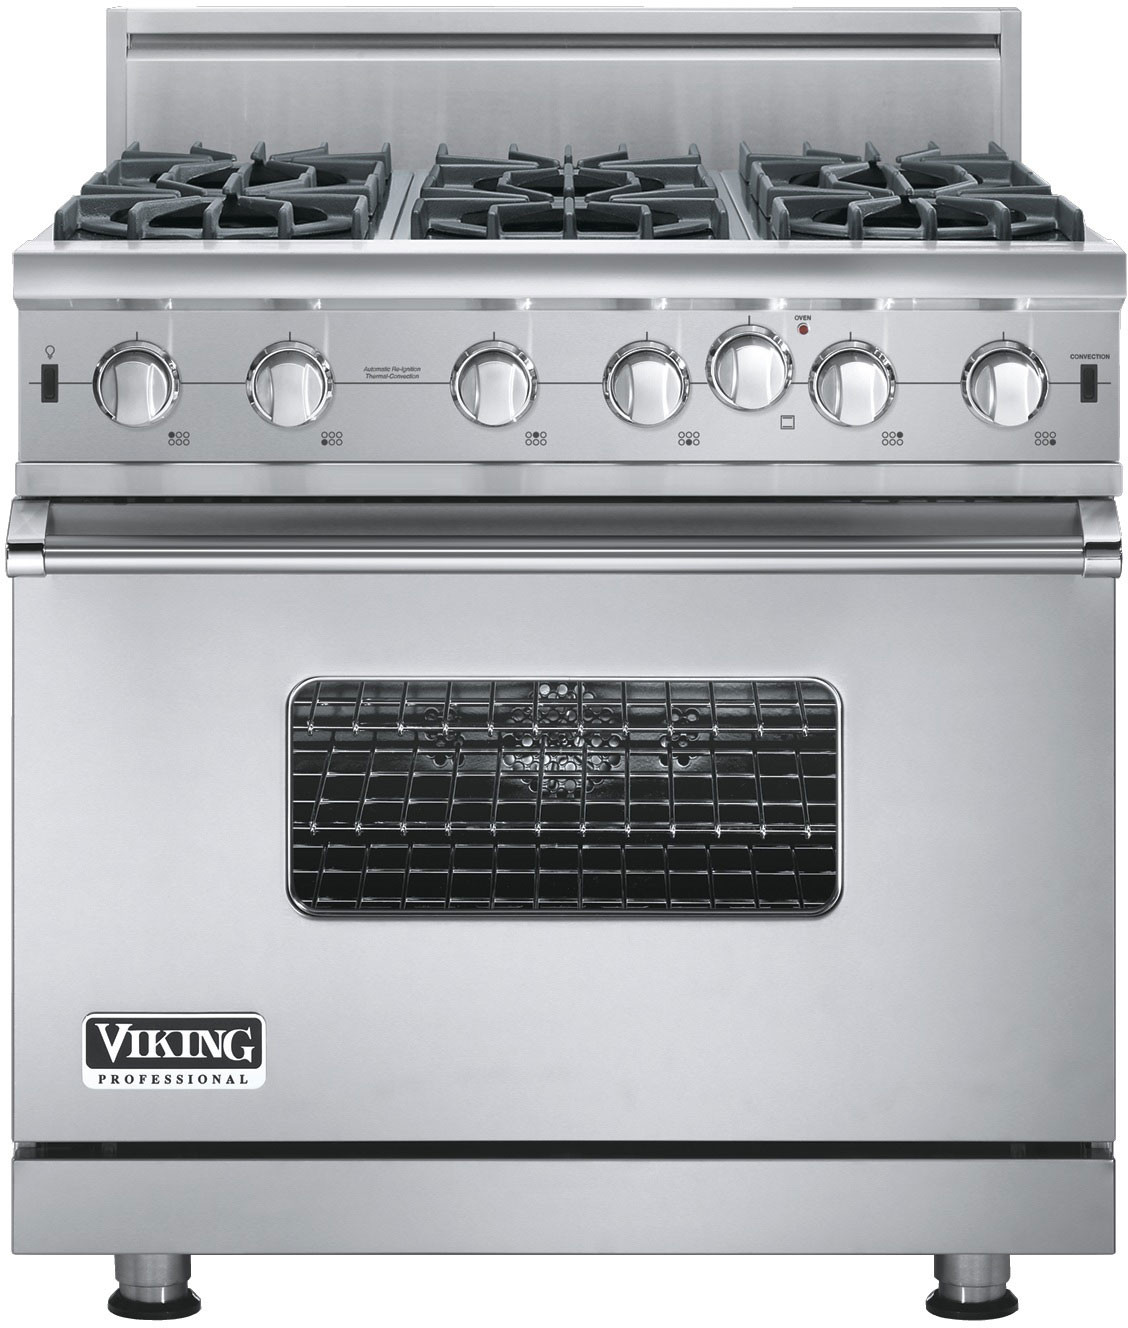 wirecutter end counters range between kitchen reviews stove lowres by inch york wolf best times high new a the ranges